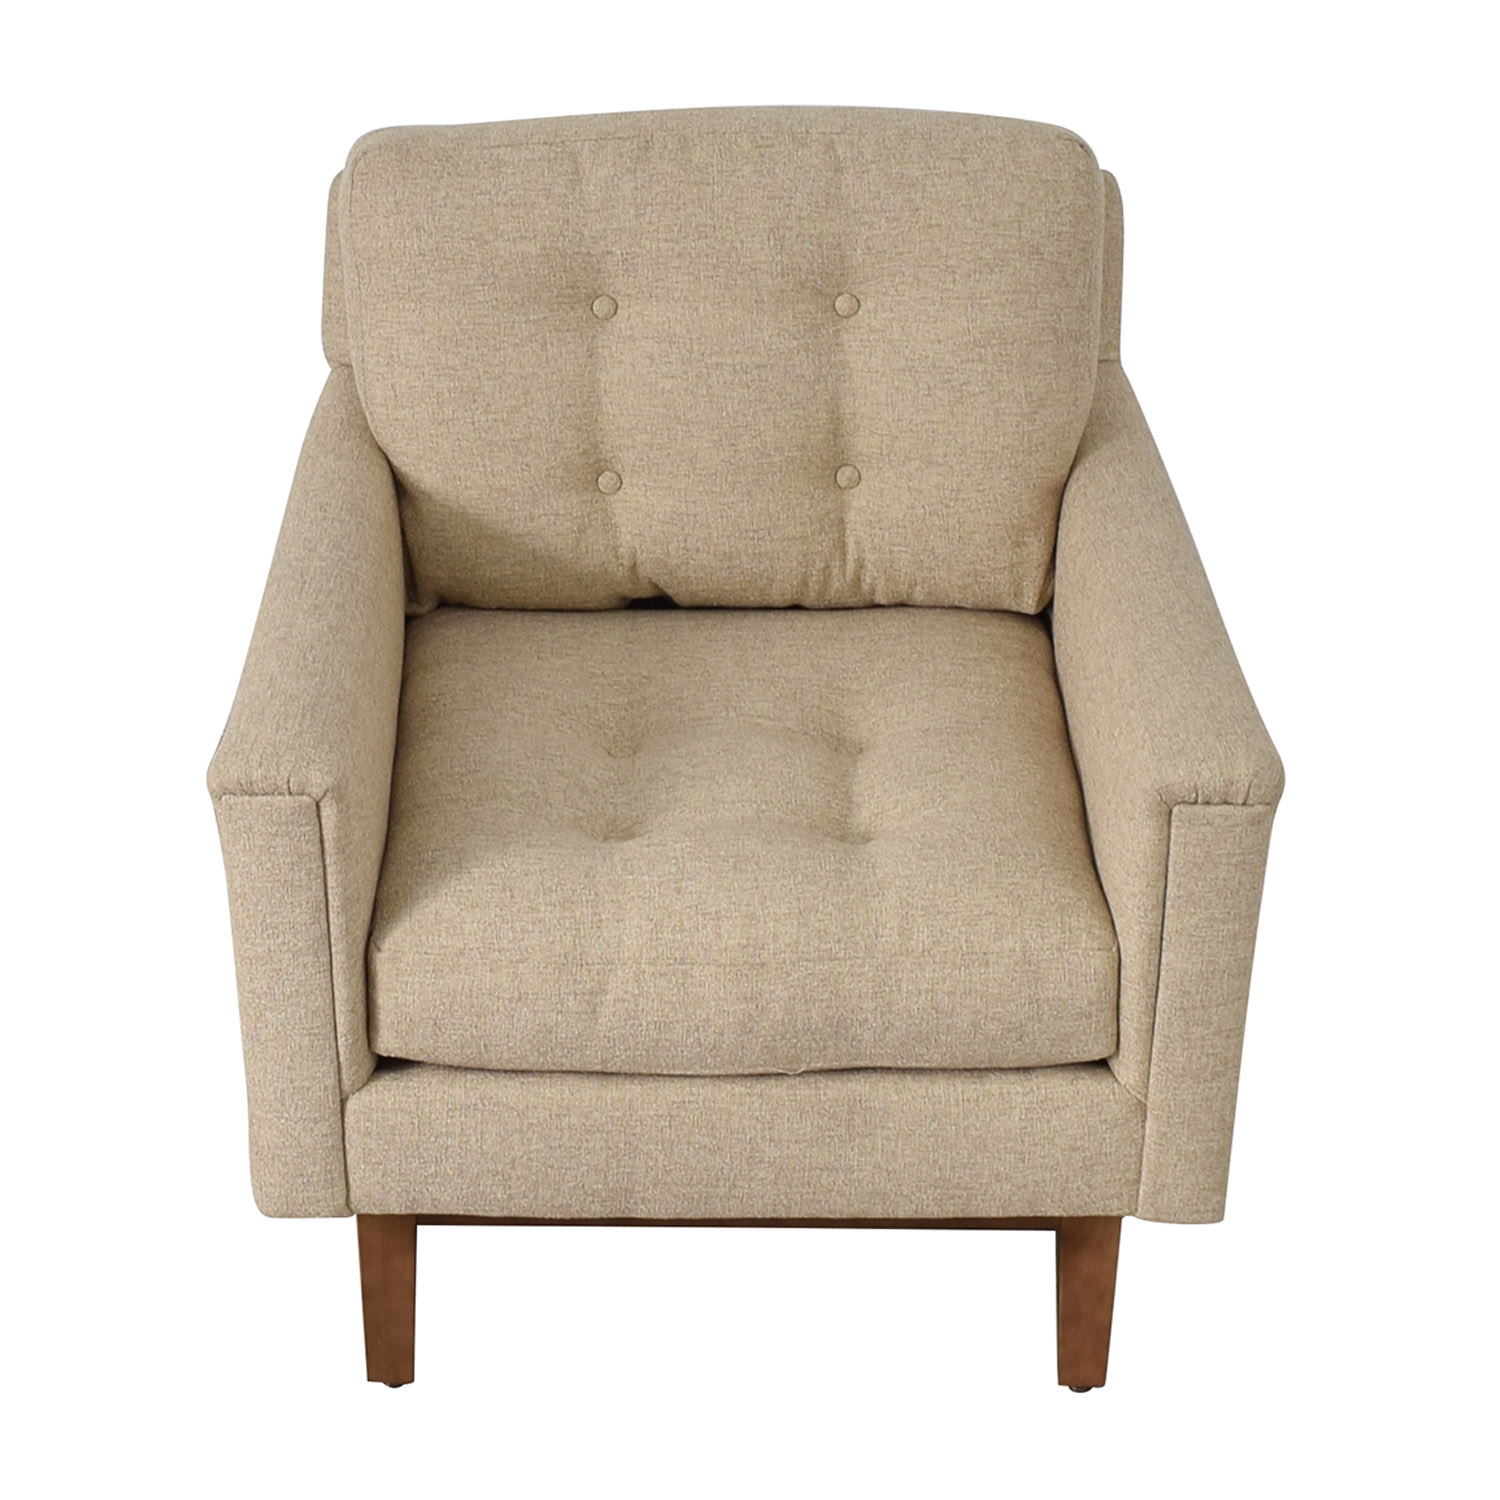 shop Rowe Furniture Rowe Furniture Ethan Beige Tufted Accent Armchair online